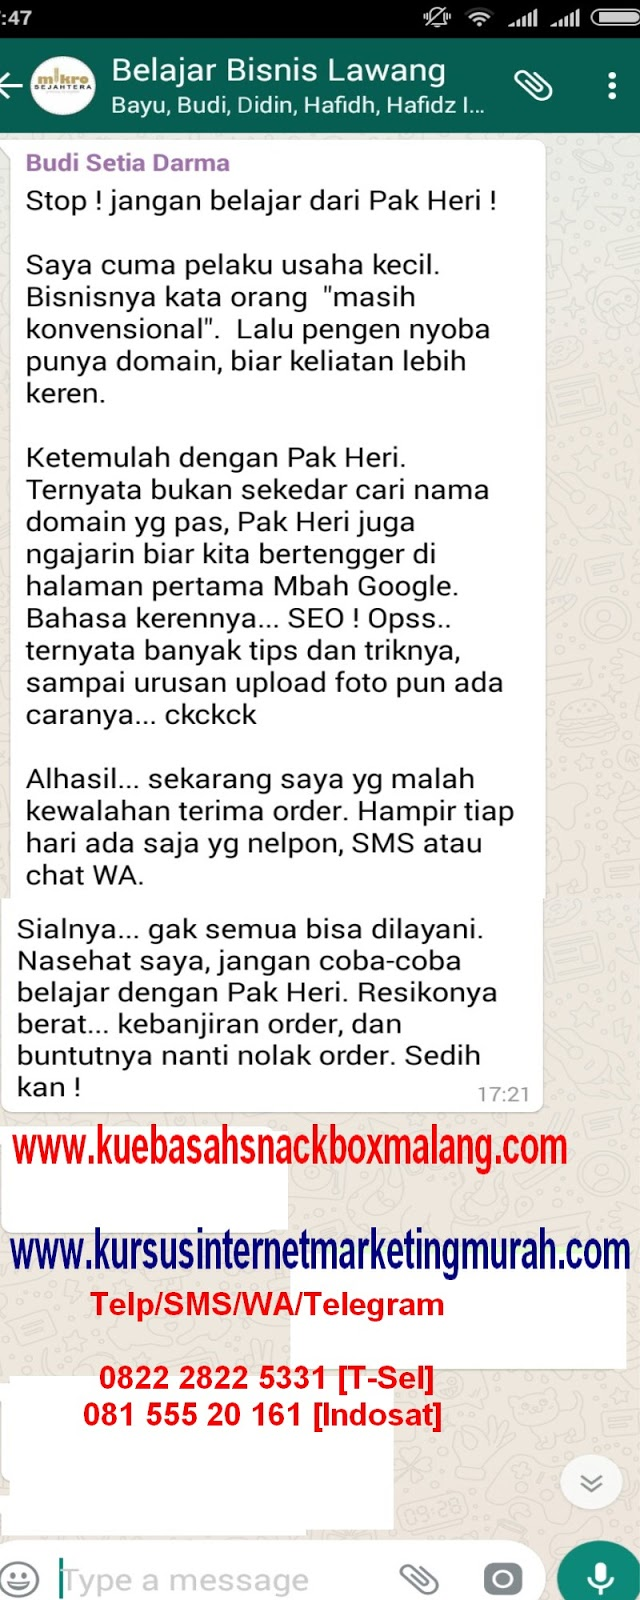 kursus internet marketing murah, belajar youtube marketing malang,